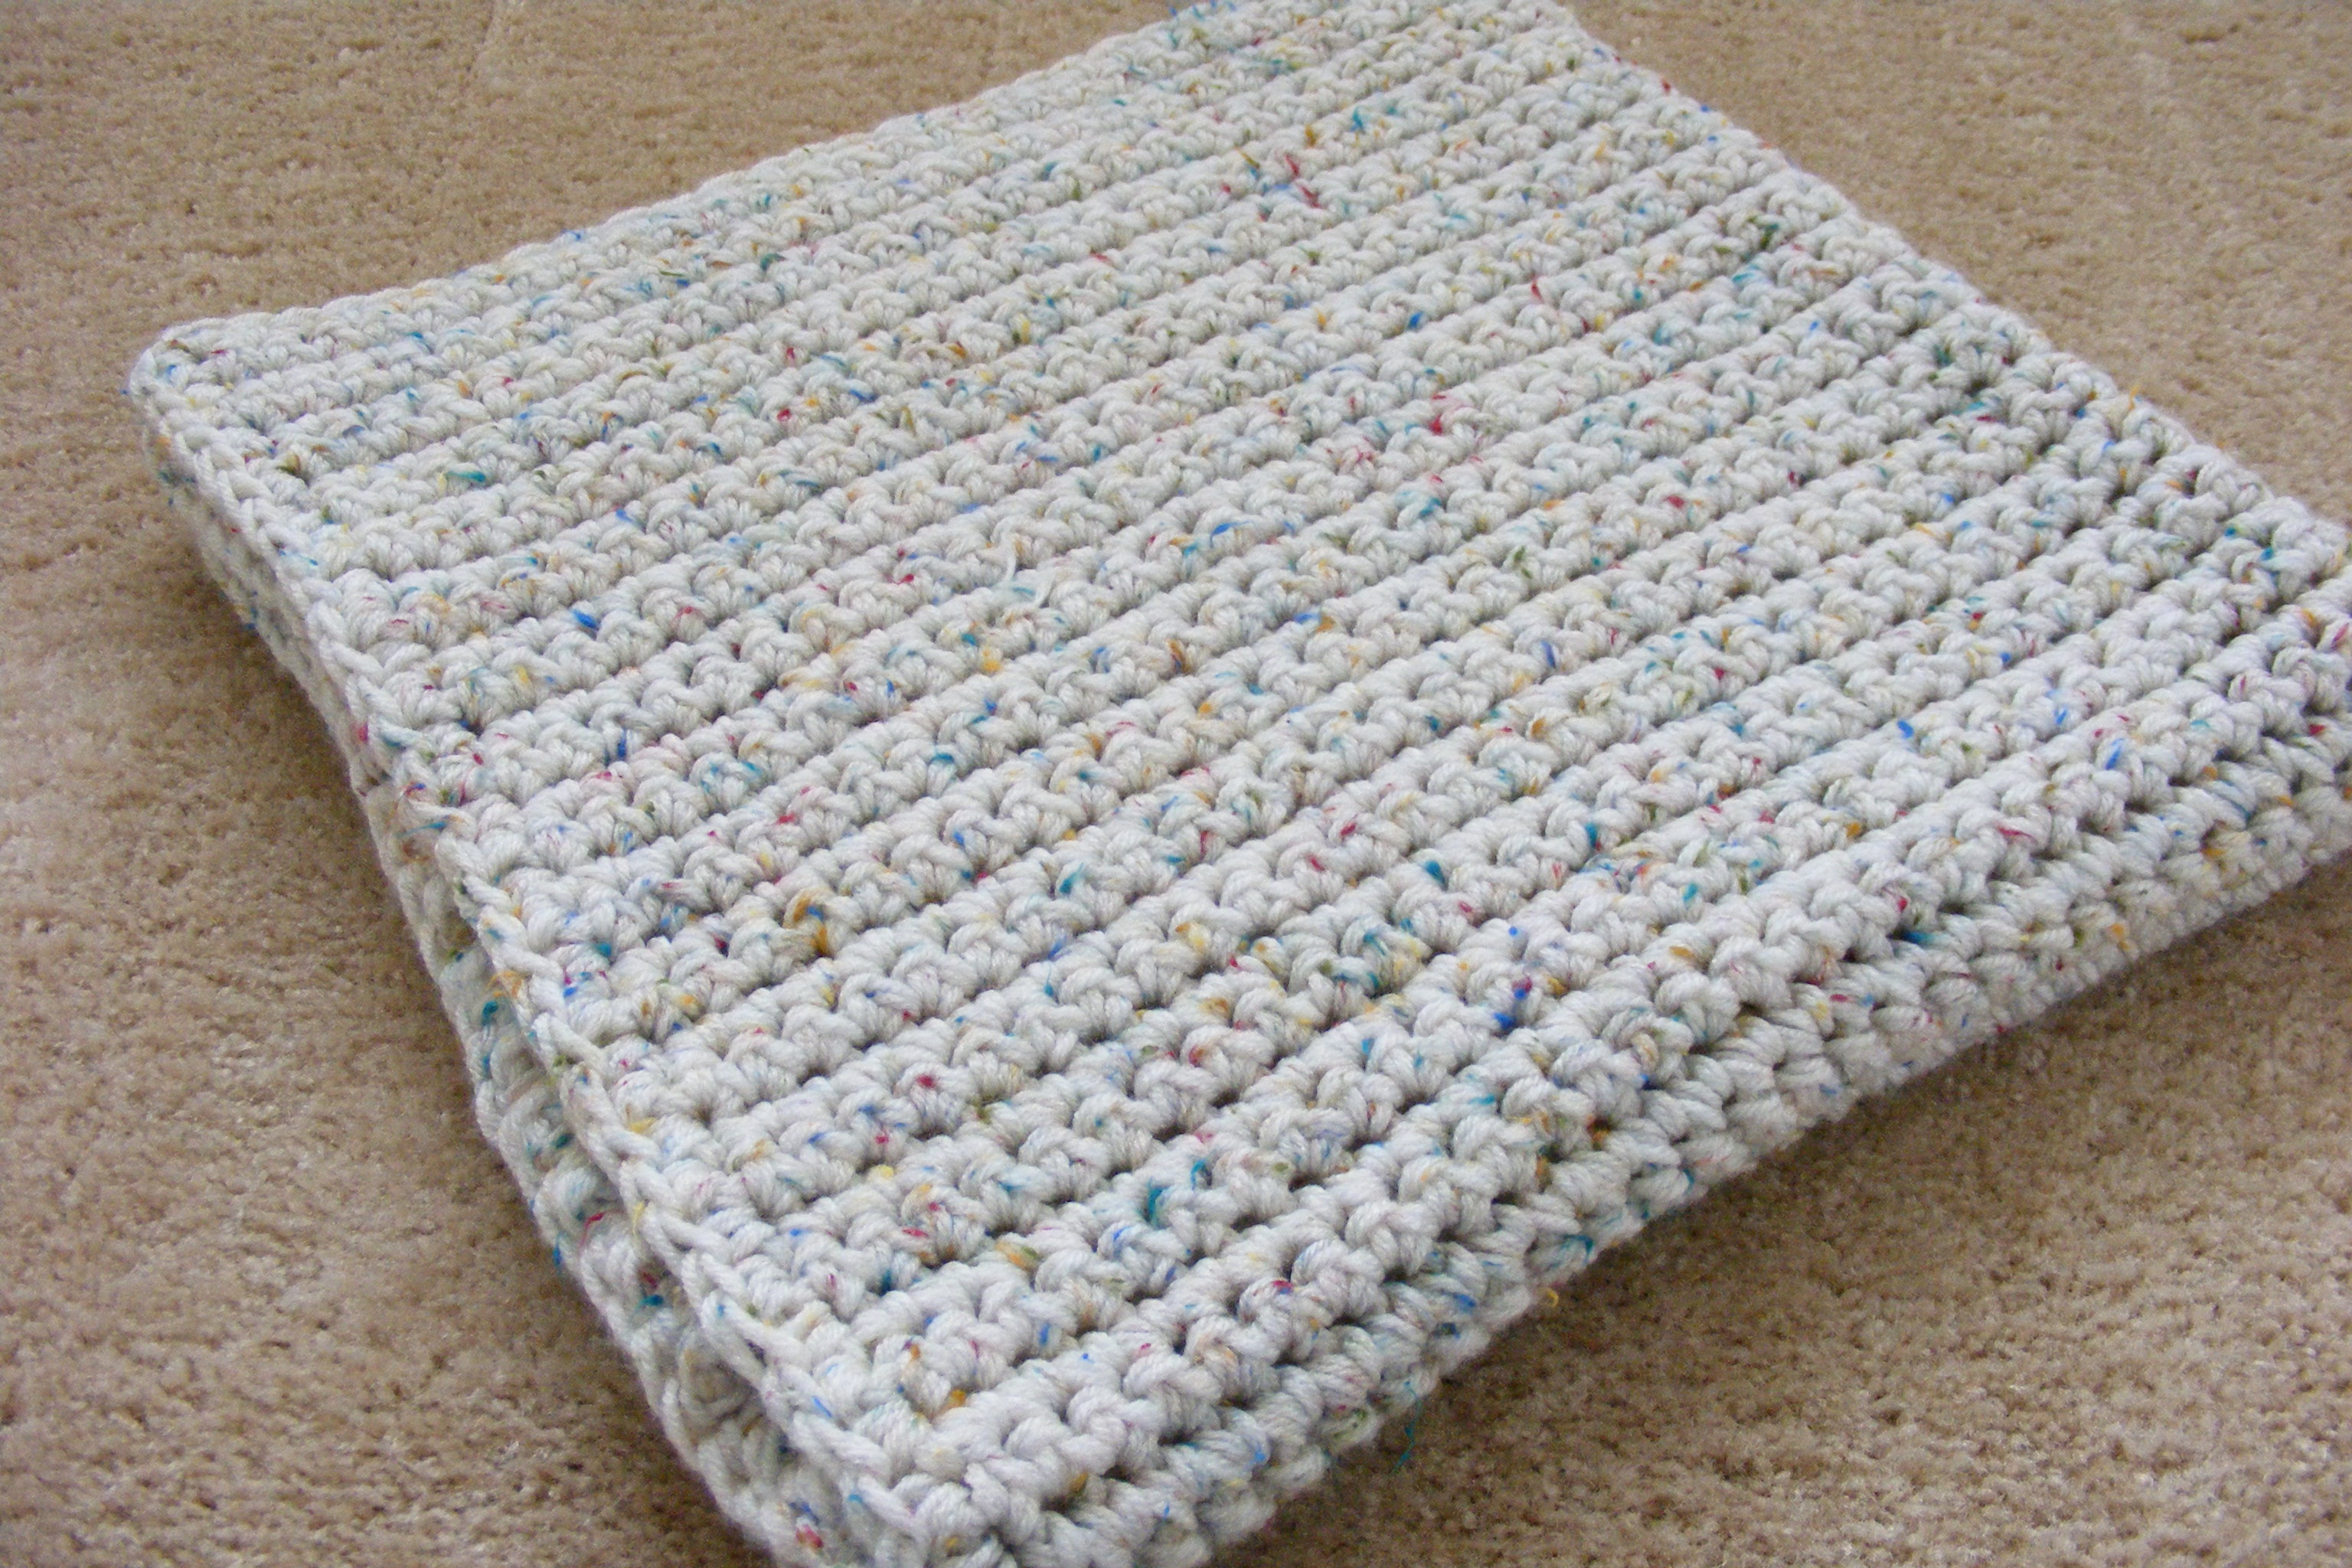 SIMPLE CROCHET BLANKETS Crochet For Beginners